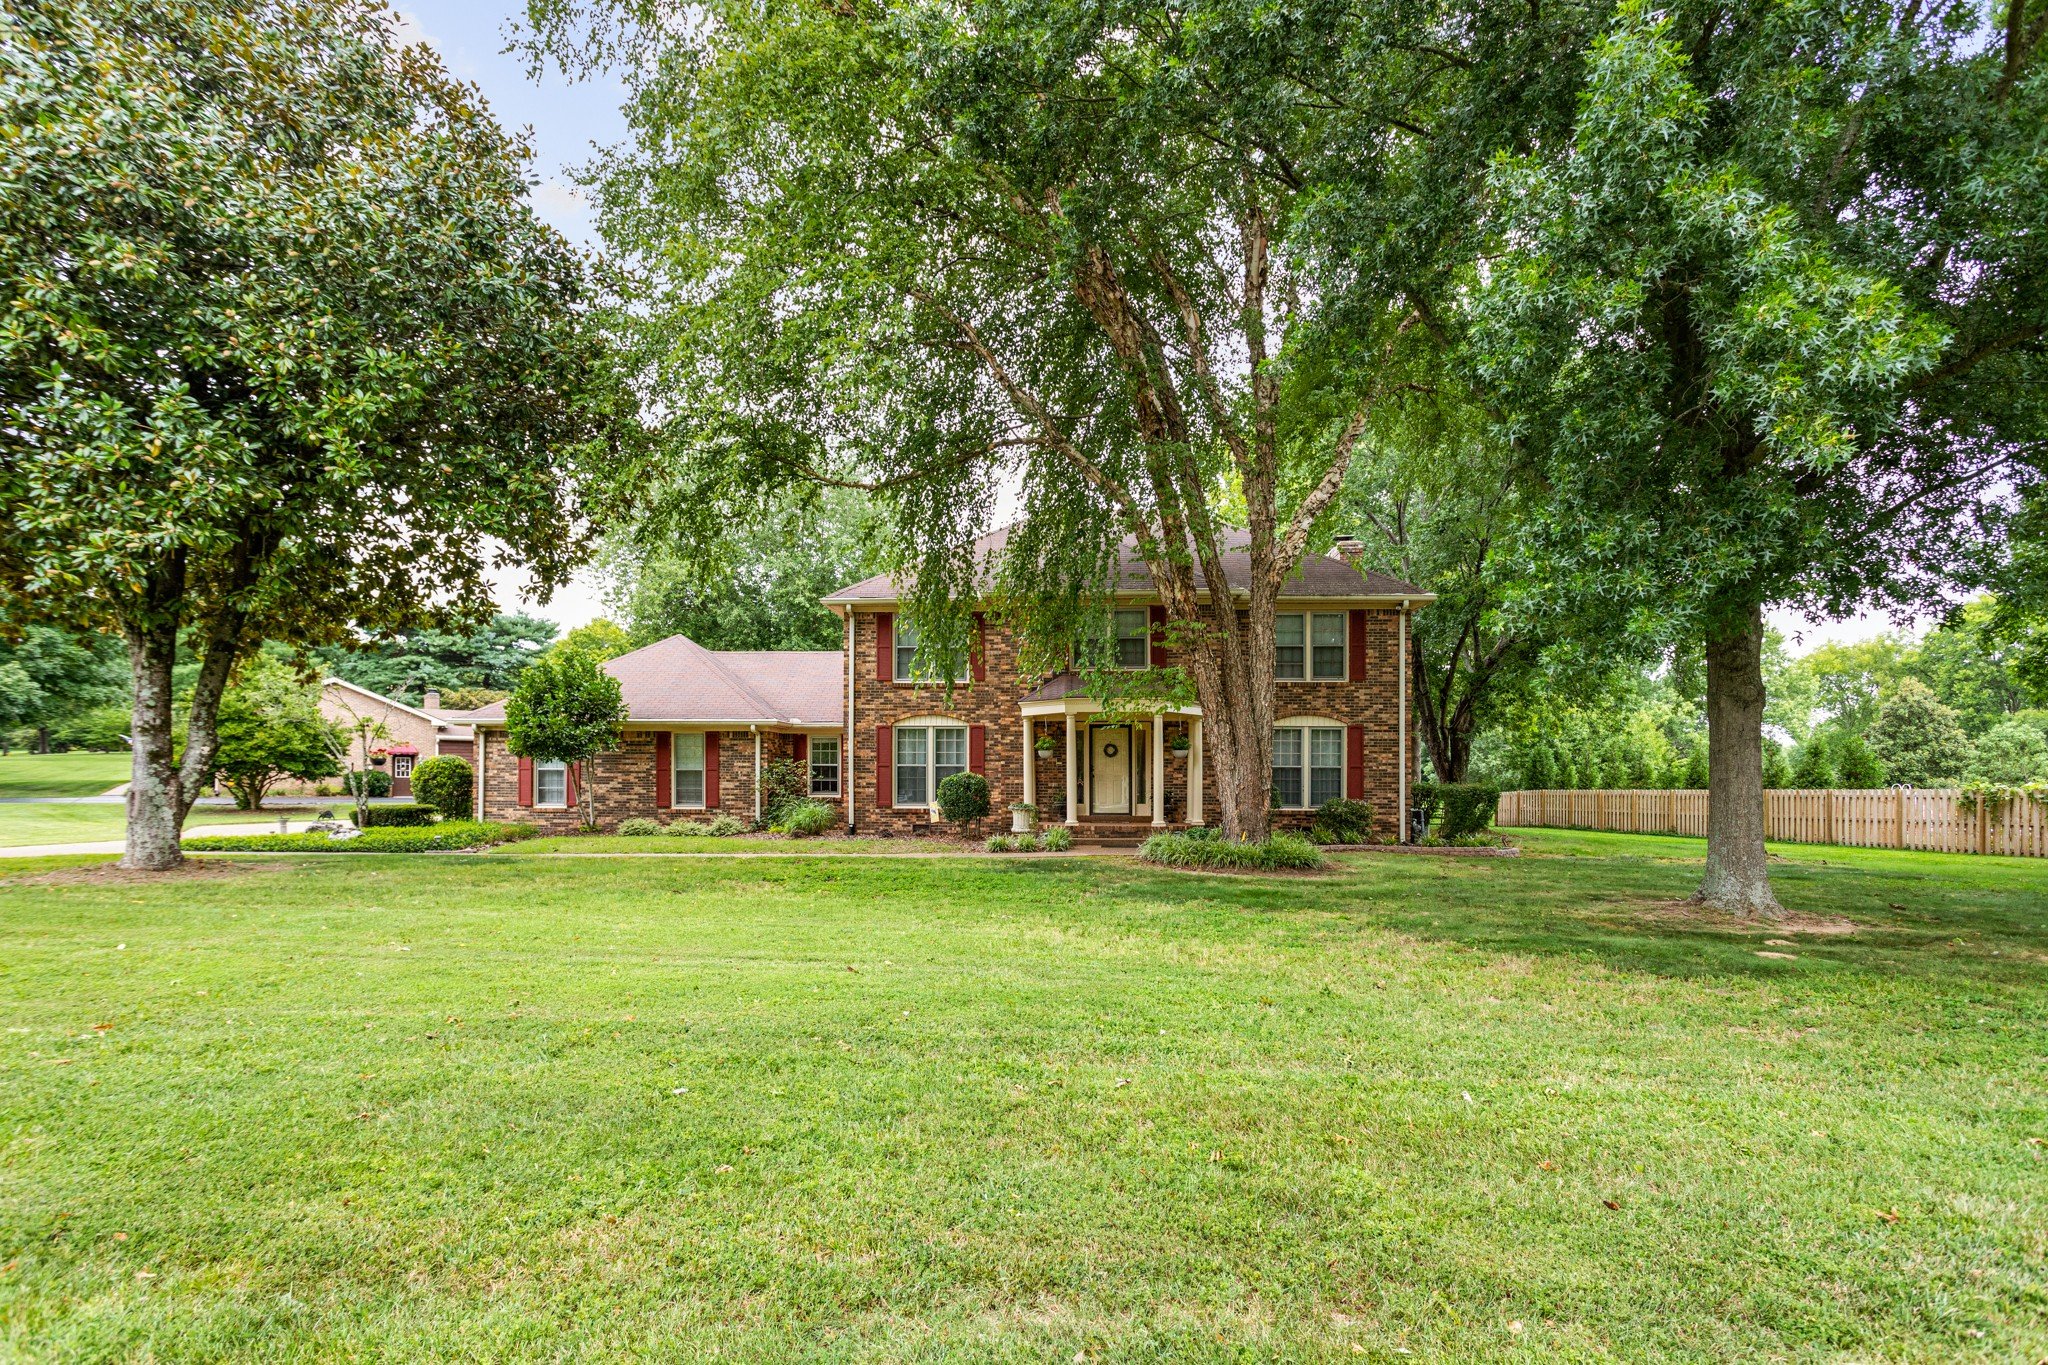 5513 W Shady Trl Property Photo - Old Hickory, TN real estate listing